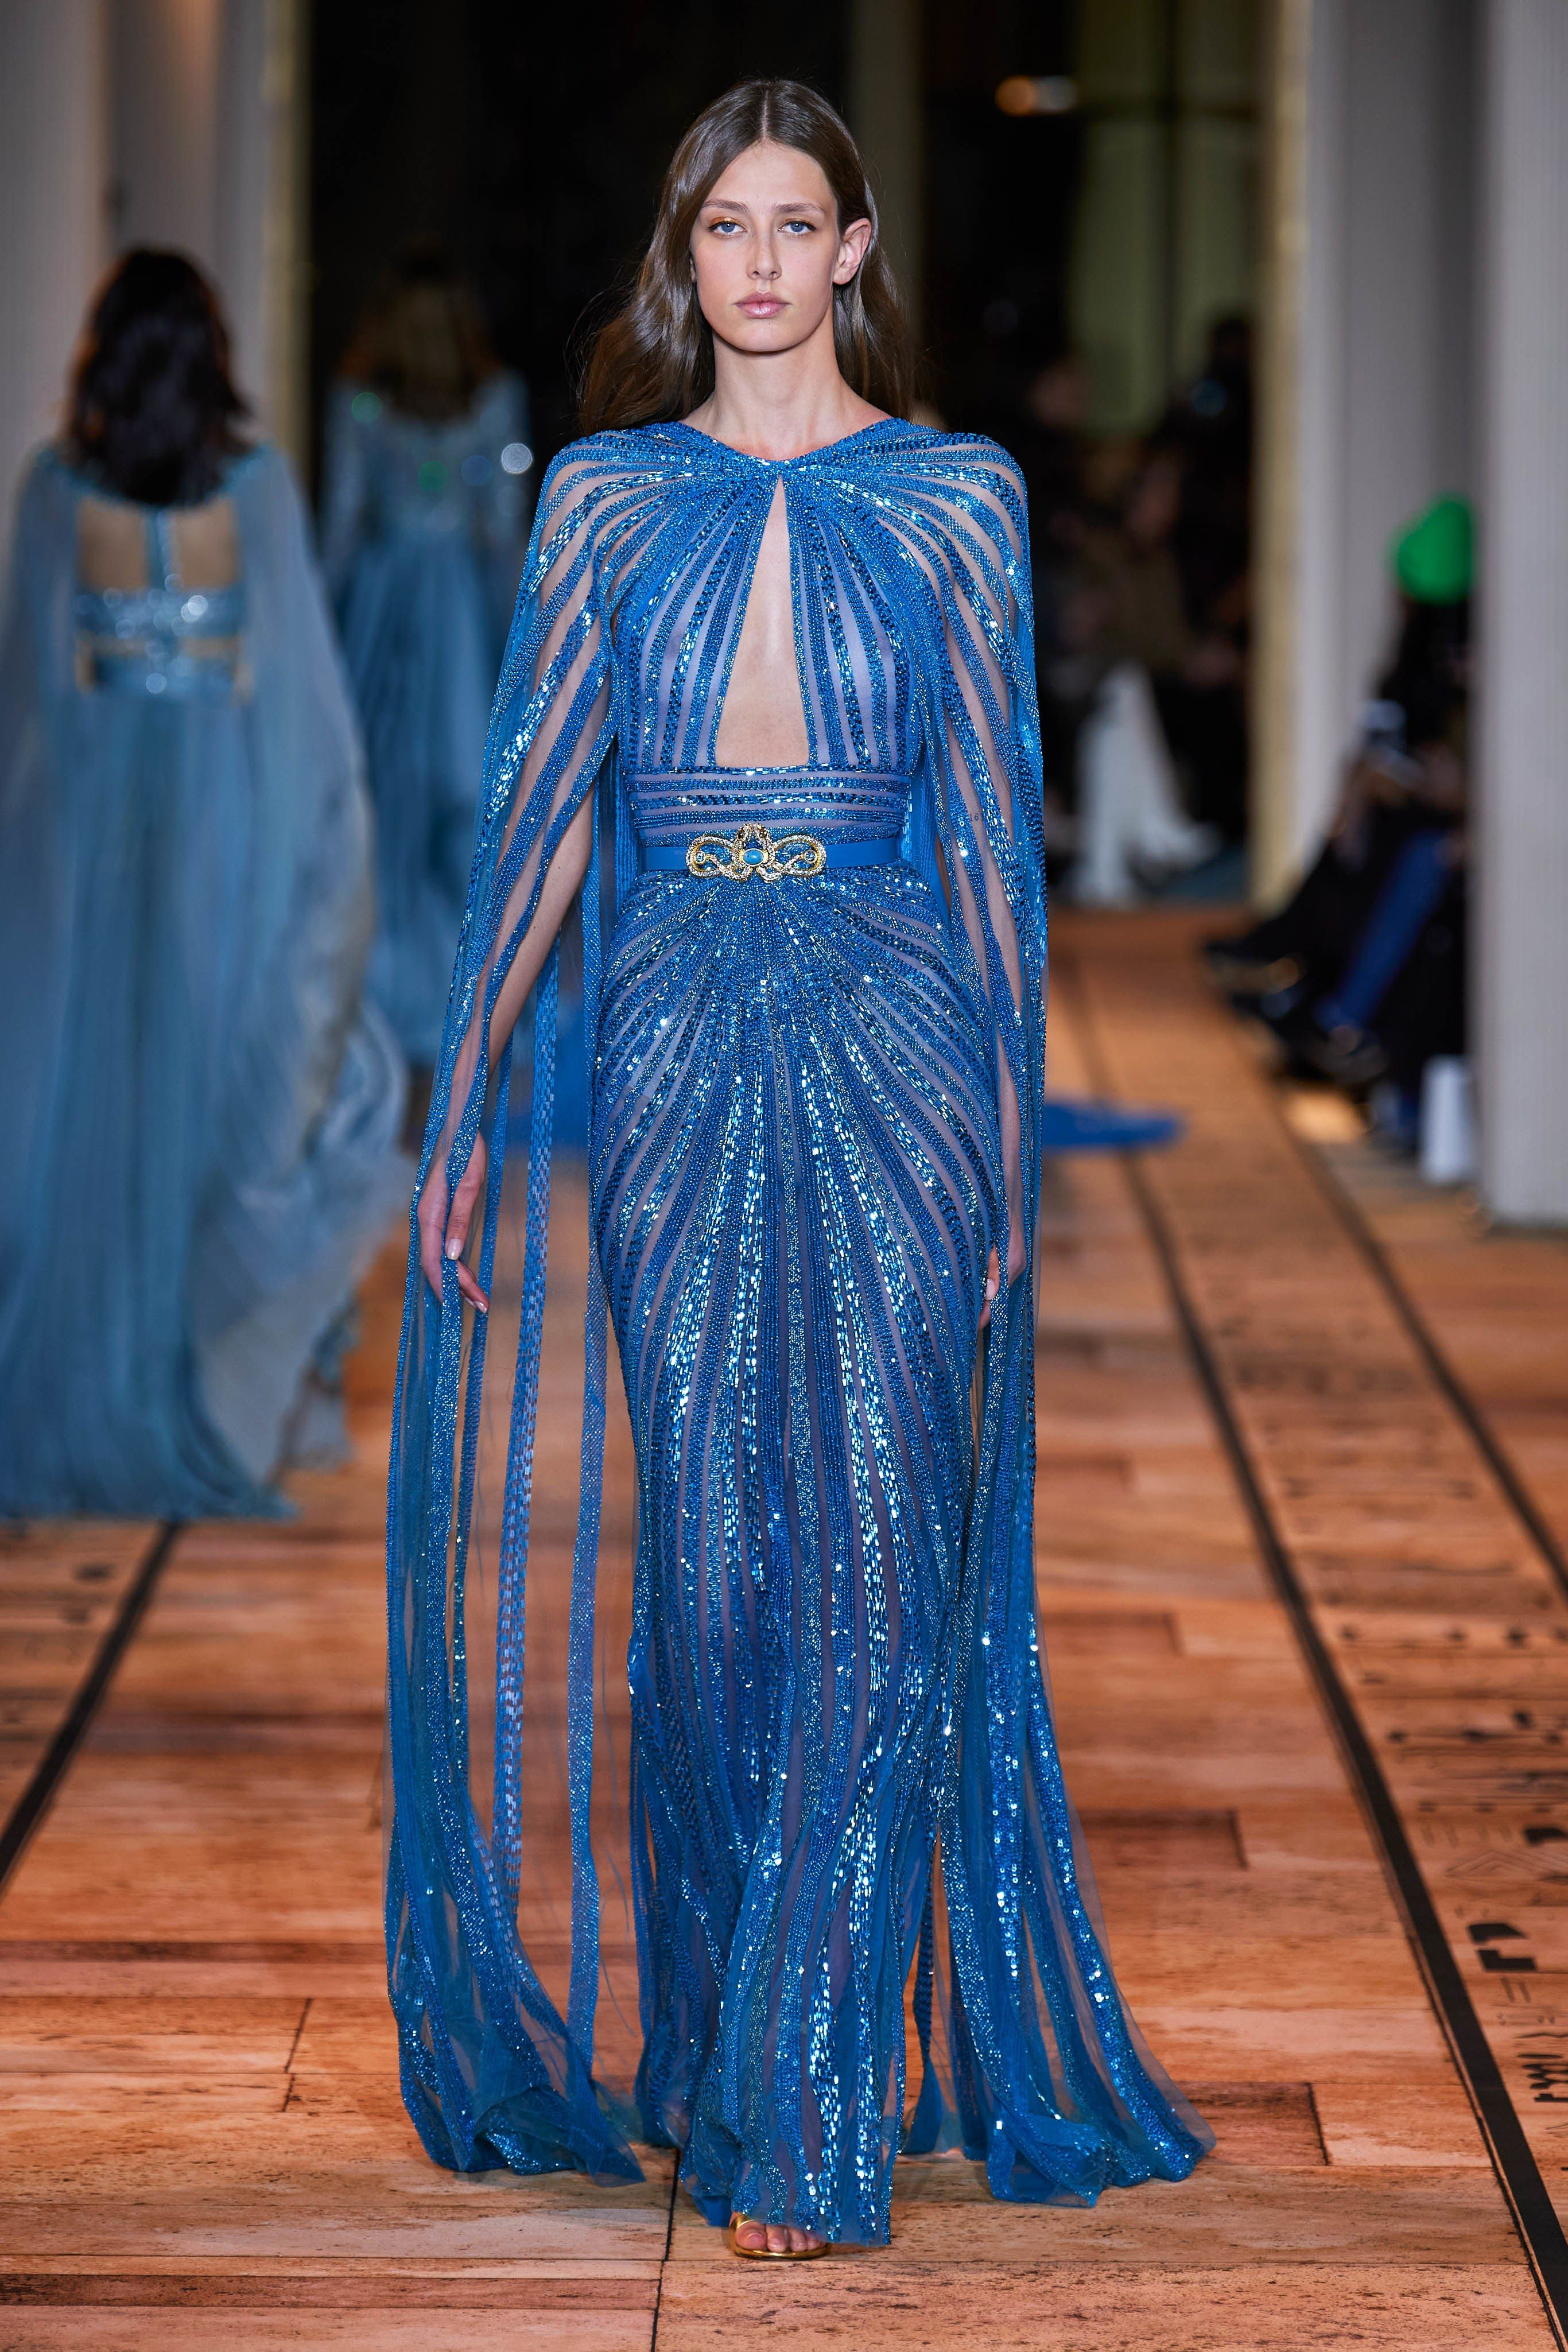 Zuhair Murad Spring 2020 Couture Collection - Vogue | Zuhair murad haute  couture, Couture collection, Couture fashion